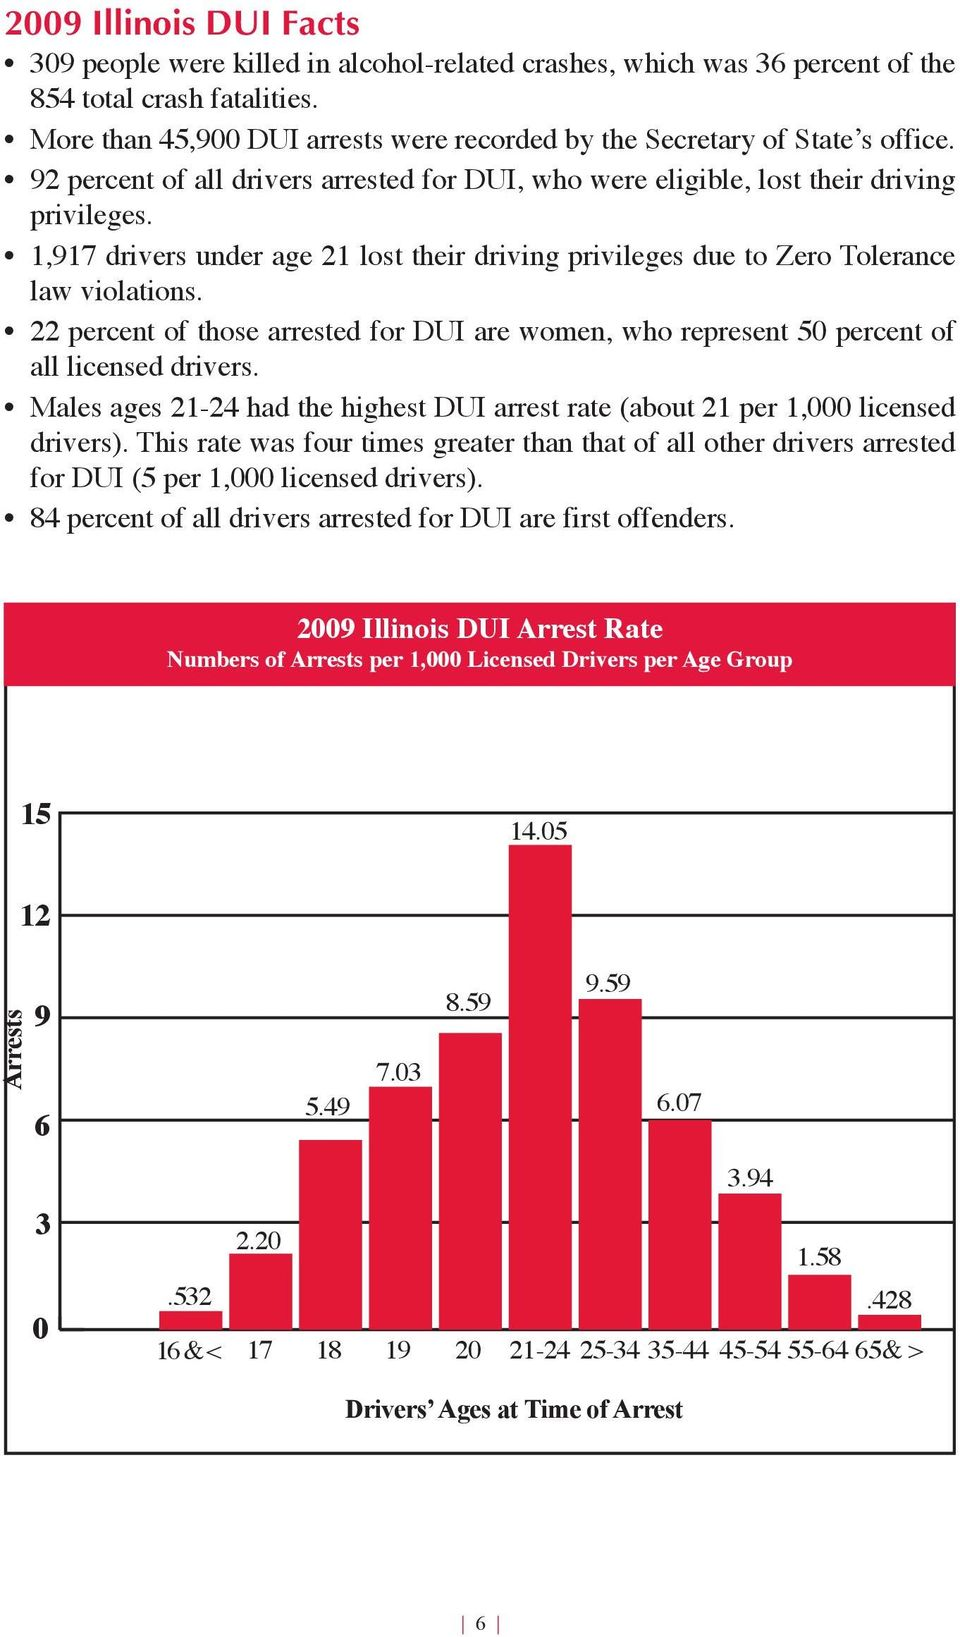 1,917 drivers under age 21 lost their driving privileges due to Zero Tolerance law violations. 22 percent of those arrested for DUI are women, who represent 50 percent of all licensed drivers.